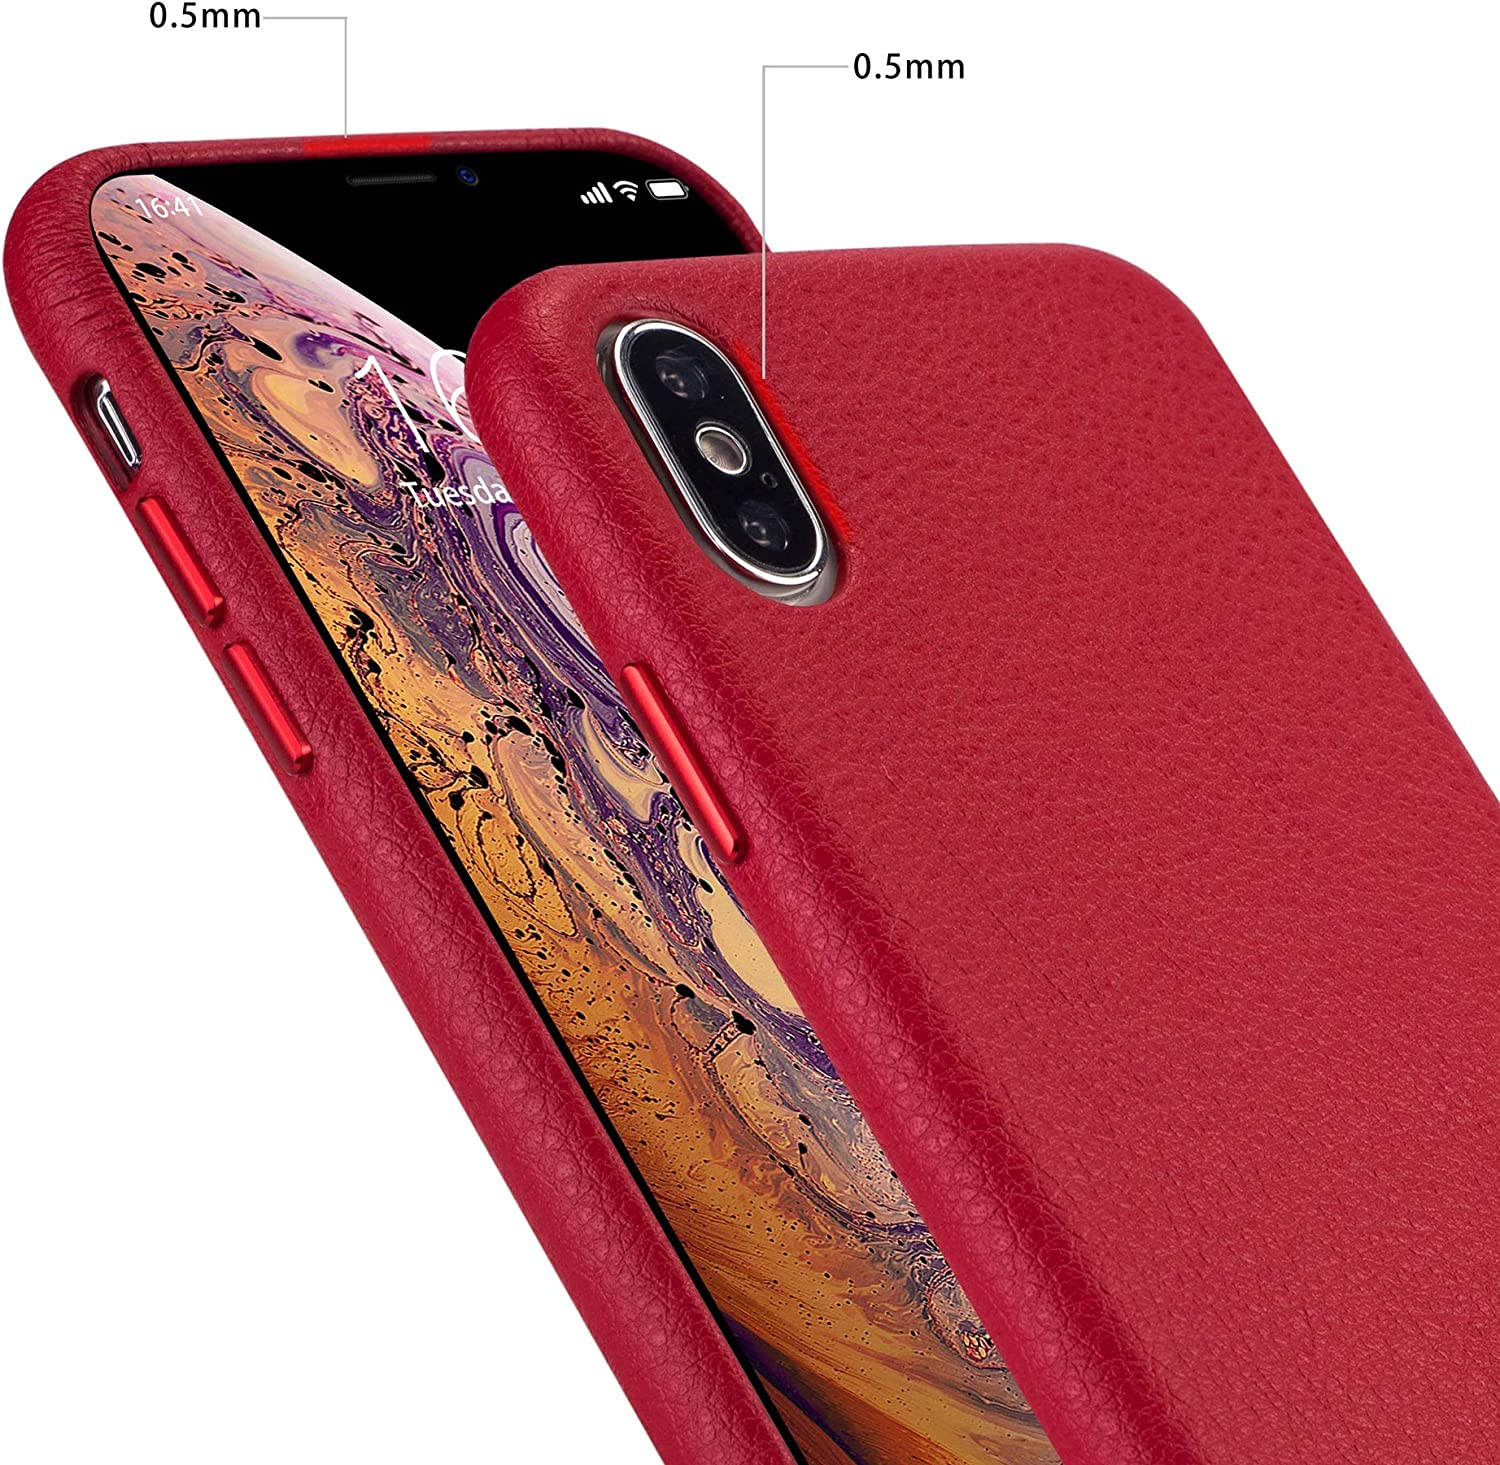 rejazz iPhone x Case iPhone Xs Case Anti-Scratch iPhone x Cover iPhone Xs Cover Genuine Leather Apple iPhone Cases for iPhone x/xs (5.8 Inch)(Red)